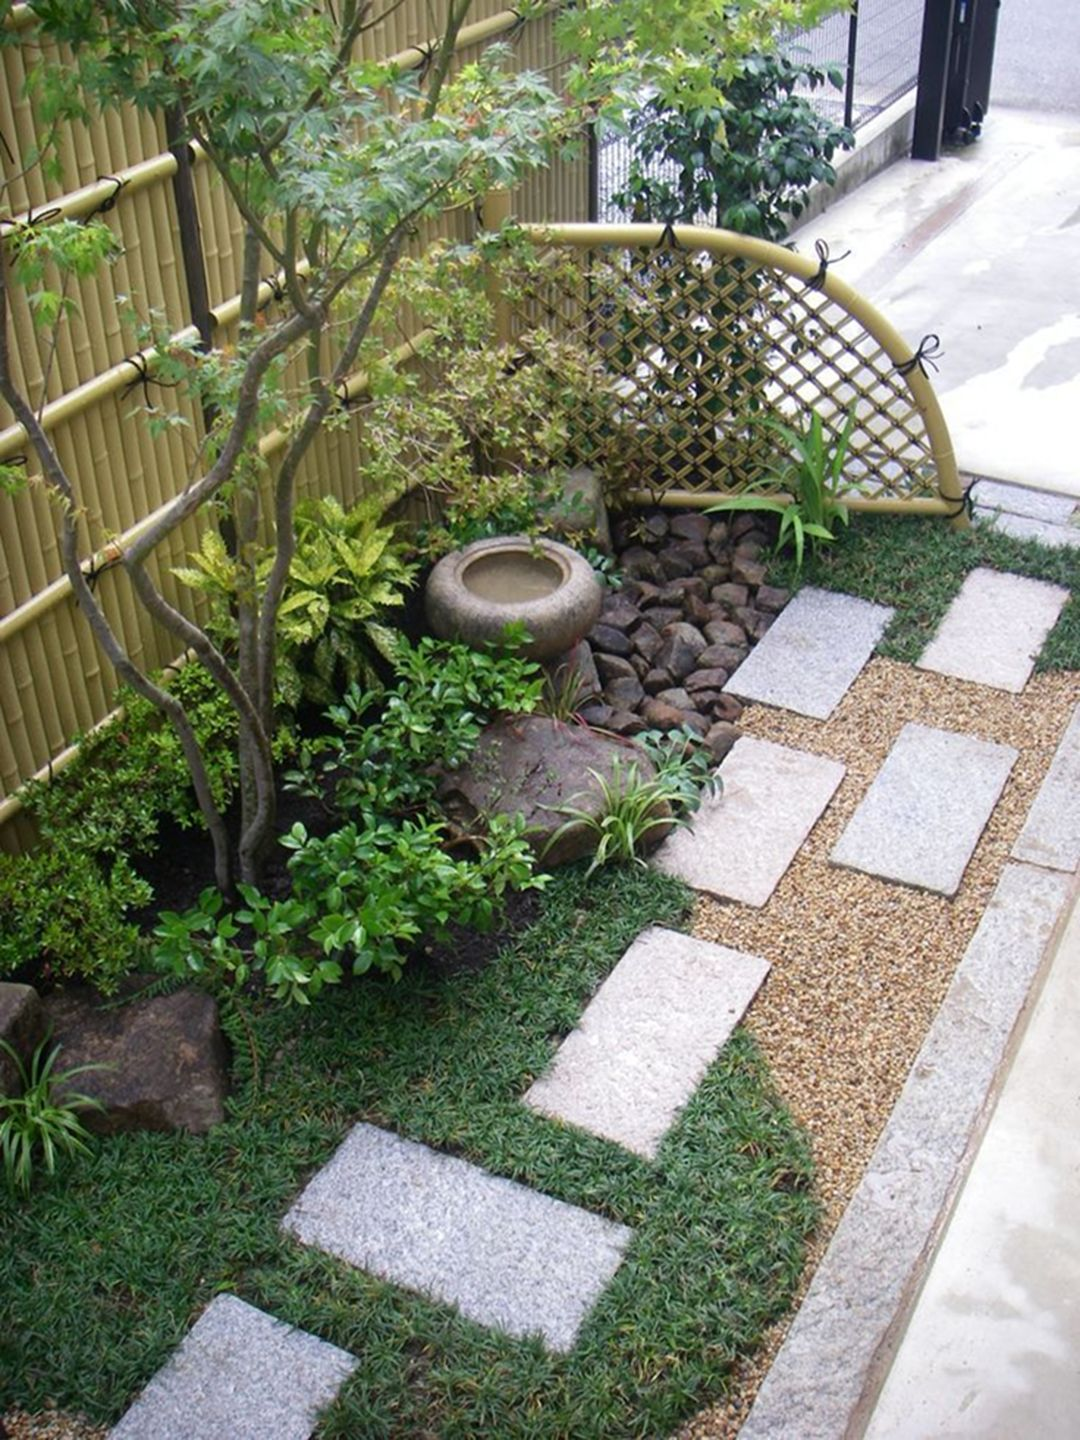 35 Incredible Small Backyard Zen Garden Ideas For Relax ... on Small Backyard Japanese Garden Ideas id=47585